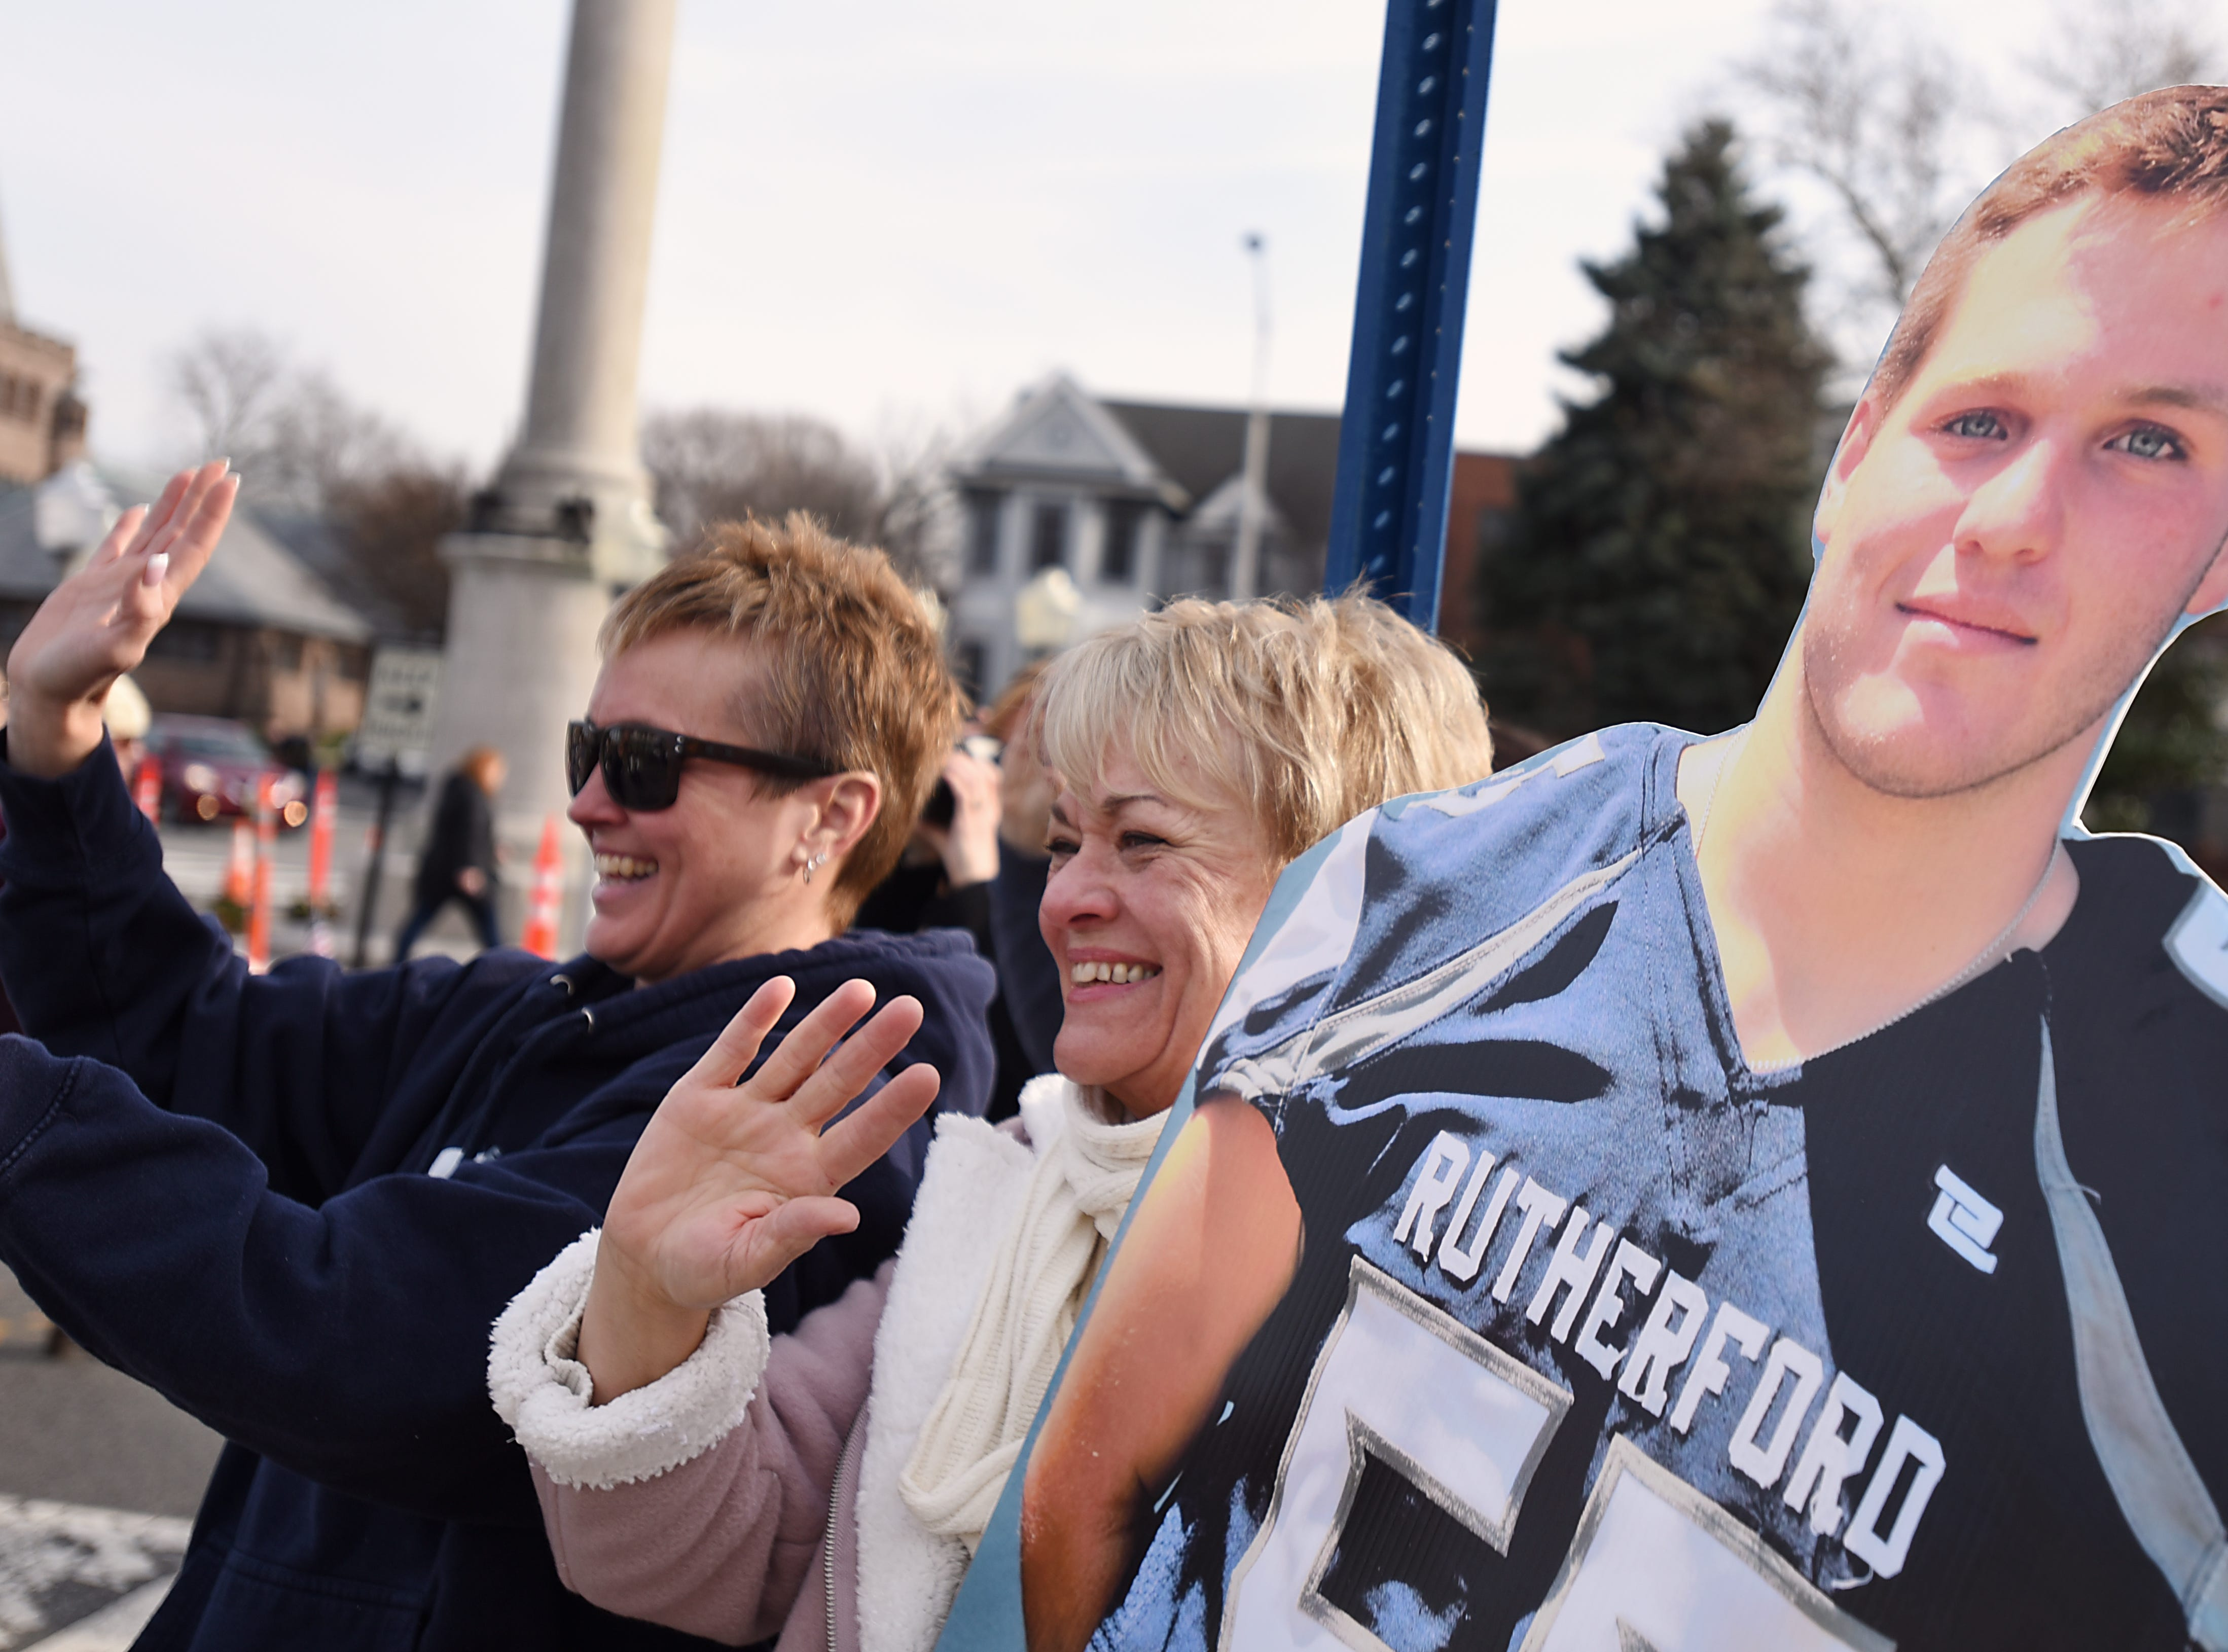 (From left) Cheryl Melfa and Cynthia Bott hold up a cut-out of Jack Melfa during the Rutherford Football parade in Rutherford on Saturday December 1, 2018.